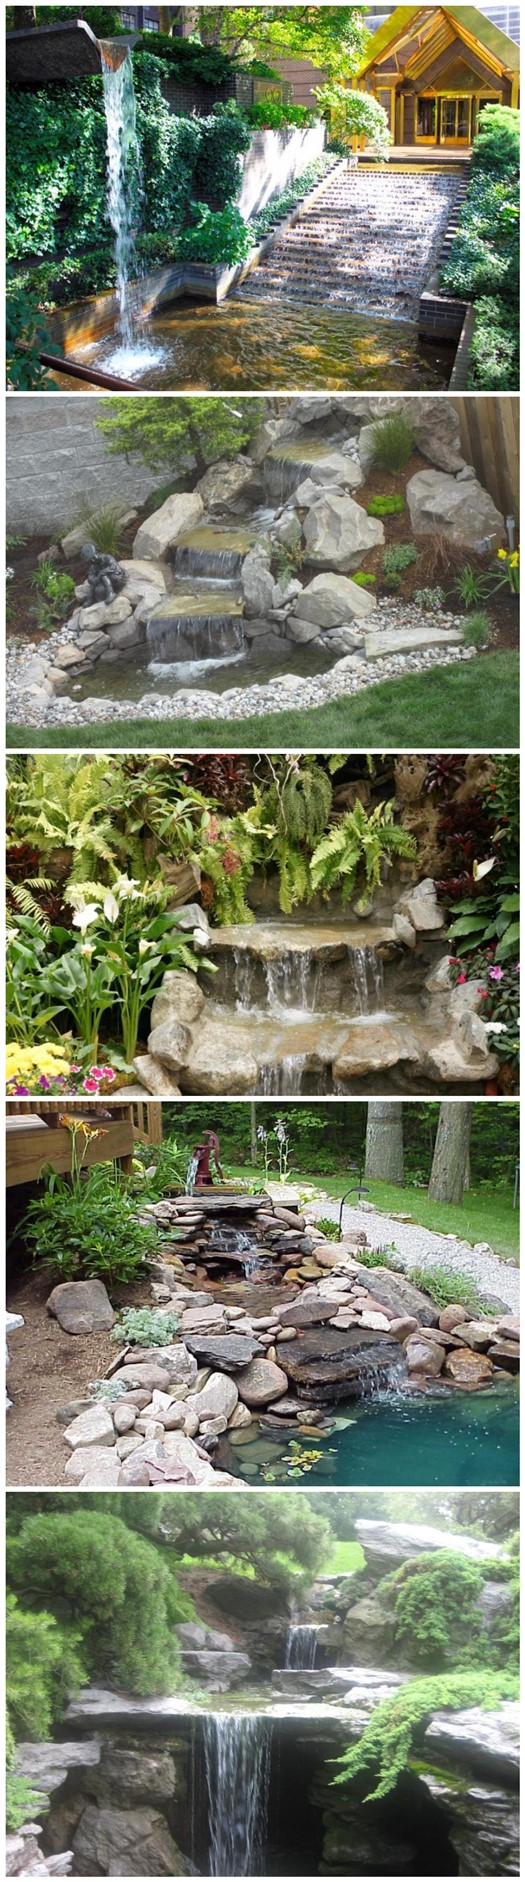 How to build a garden waterfall pond 3 diy tag for Build a simple backyard waterfall